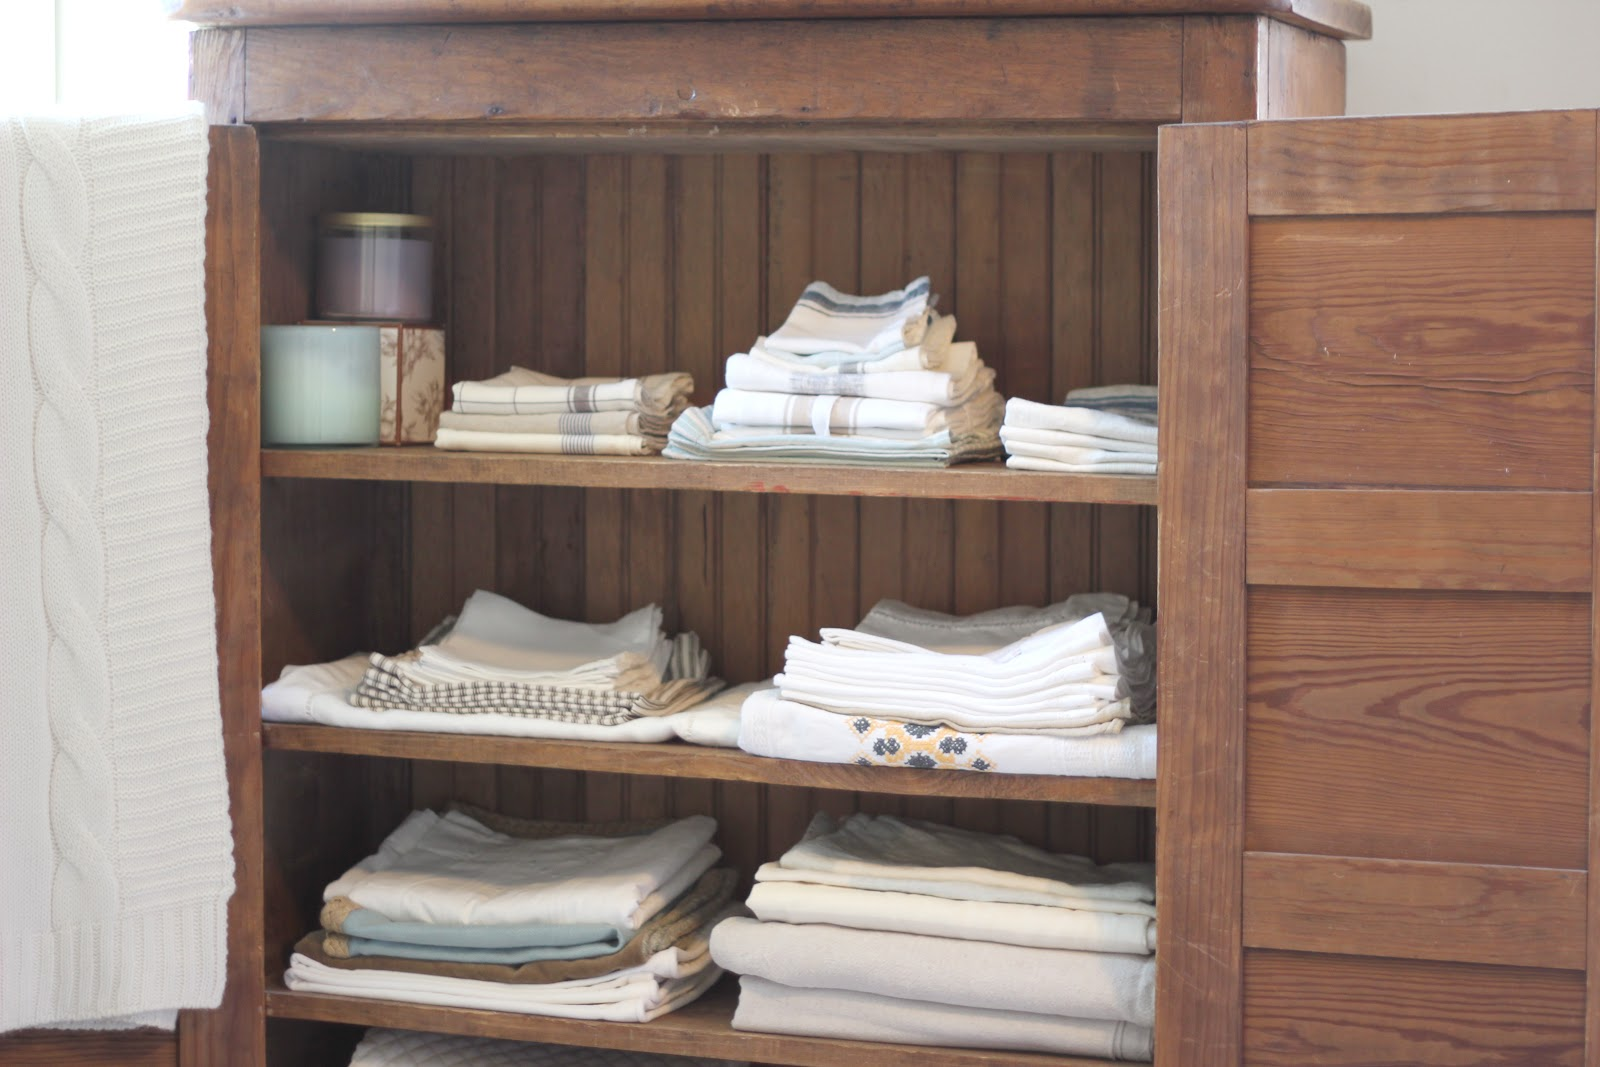 Linen closet organization - I really love this armoire: the drawers inside and out, plus the basket organization - would love to DIY a similar piece for fabric storage in the craft avupude.ml would be better then the linen closet we have.